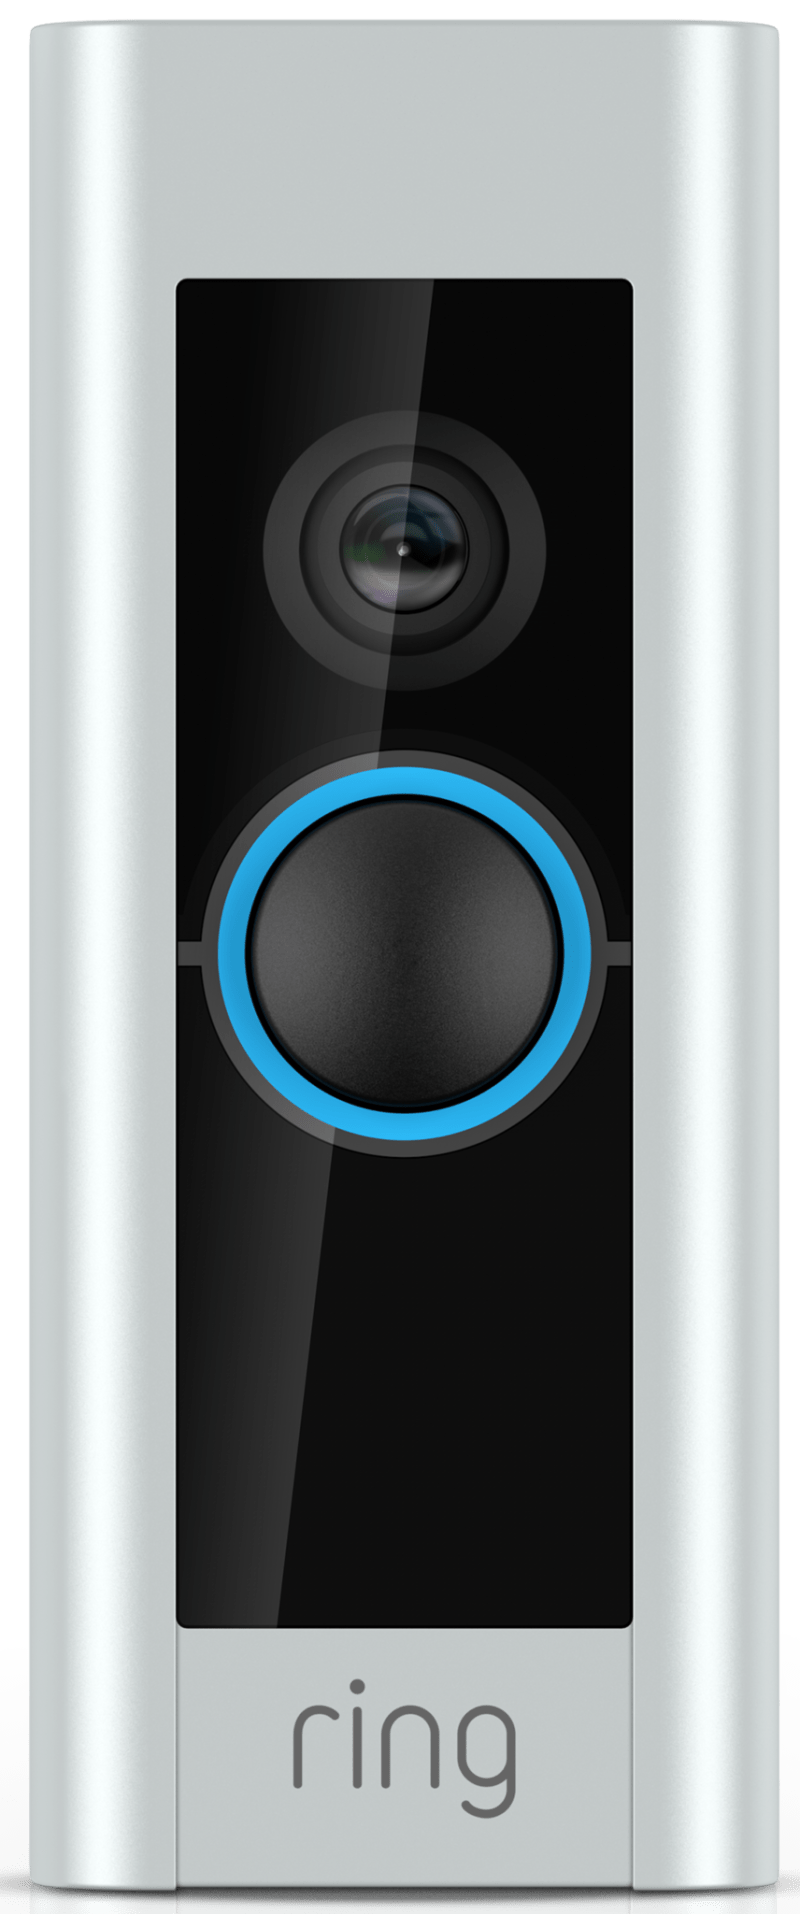 Ring Video Doorbell Pro official render